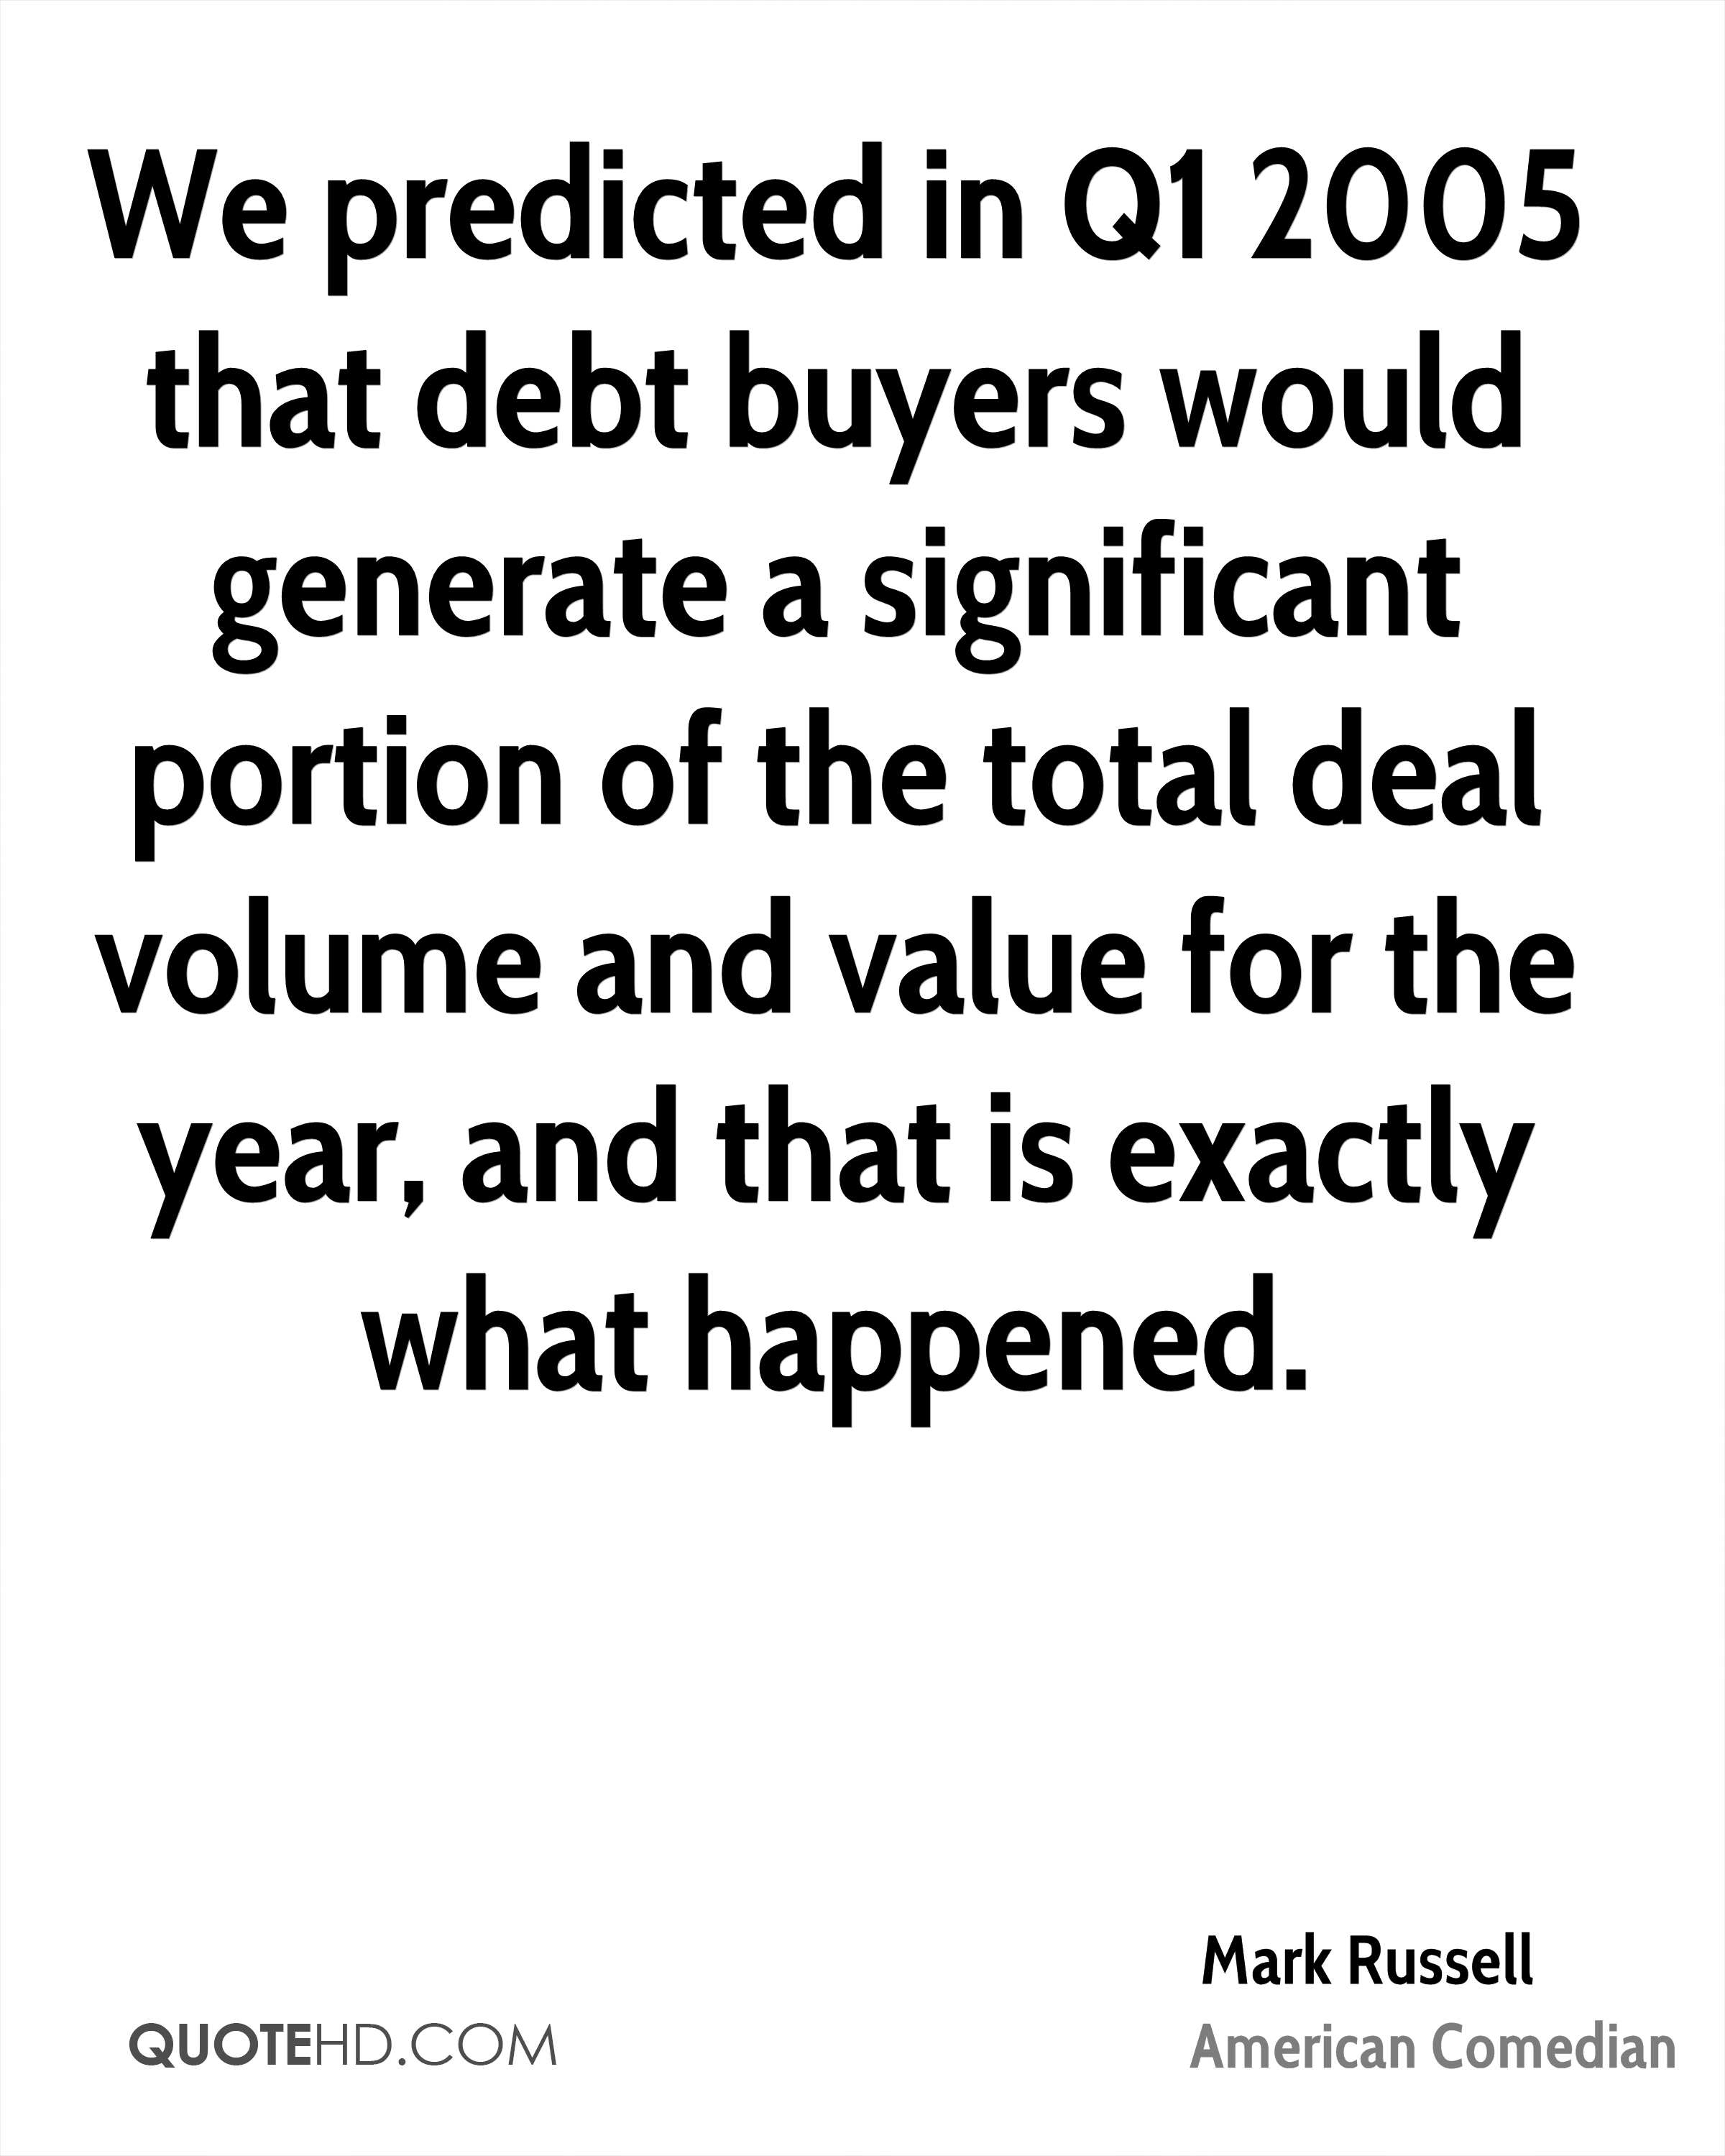 We predicted in Q1 2005 that debt buyers would generate a significant portion of the total deal volume and value for the year, and that is exactly what happened.